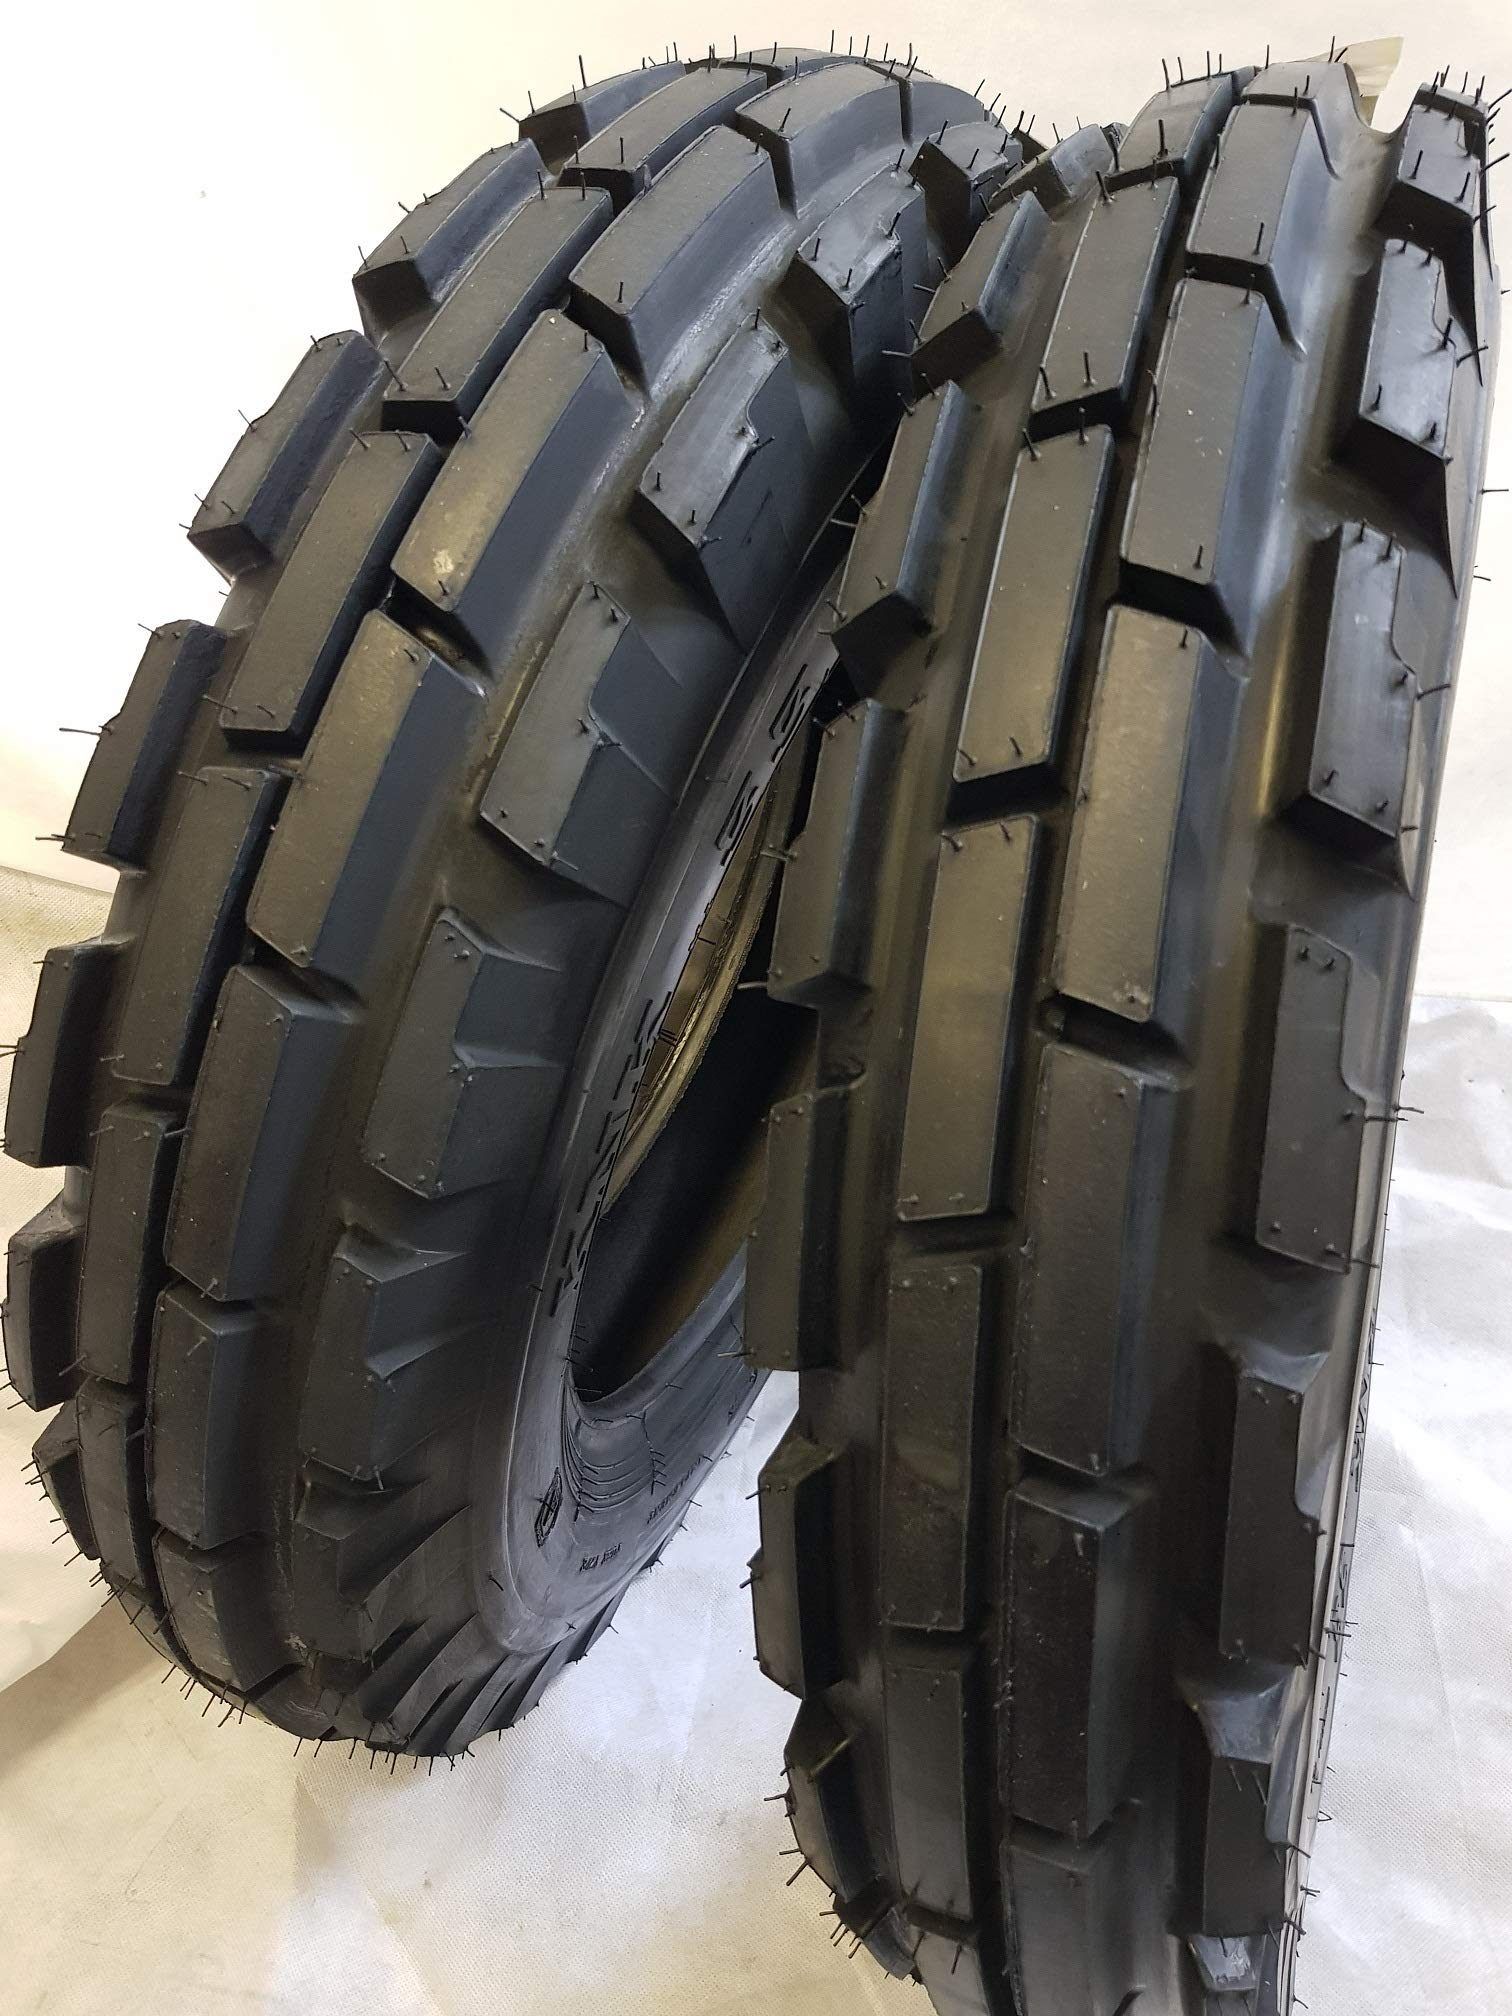 (2 TIRES + 2 TUBES) 6.50-16 8 PLY ROAD WARRIOR KNK33 3-Rib Farm Tractor Tires 6.50x16